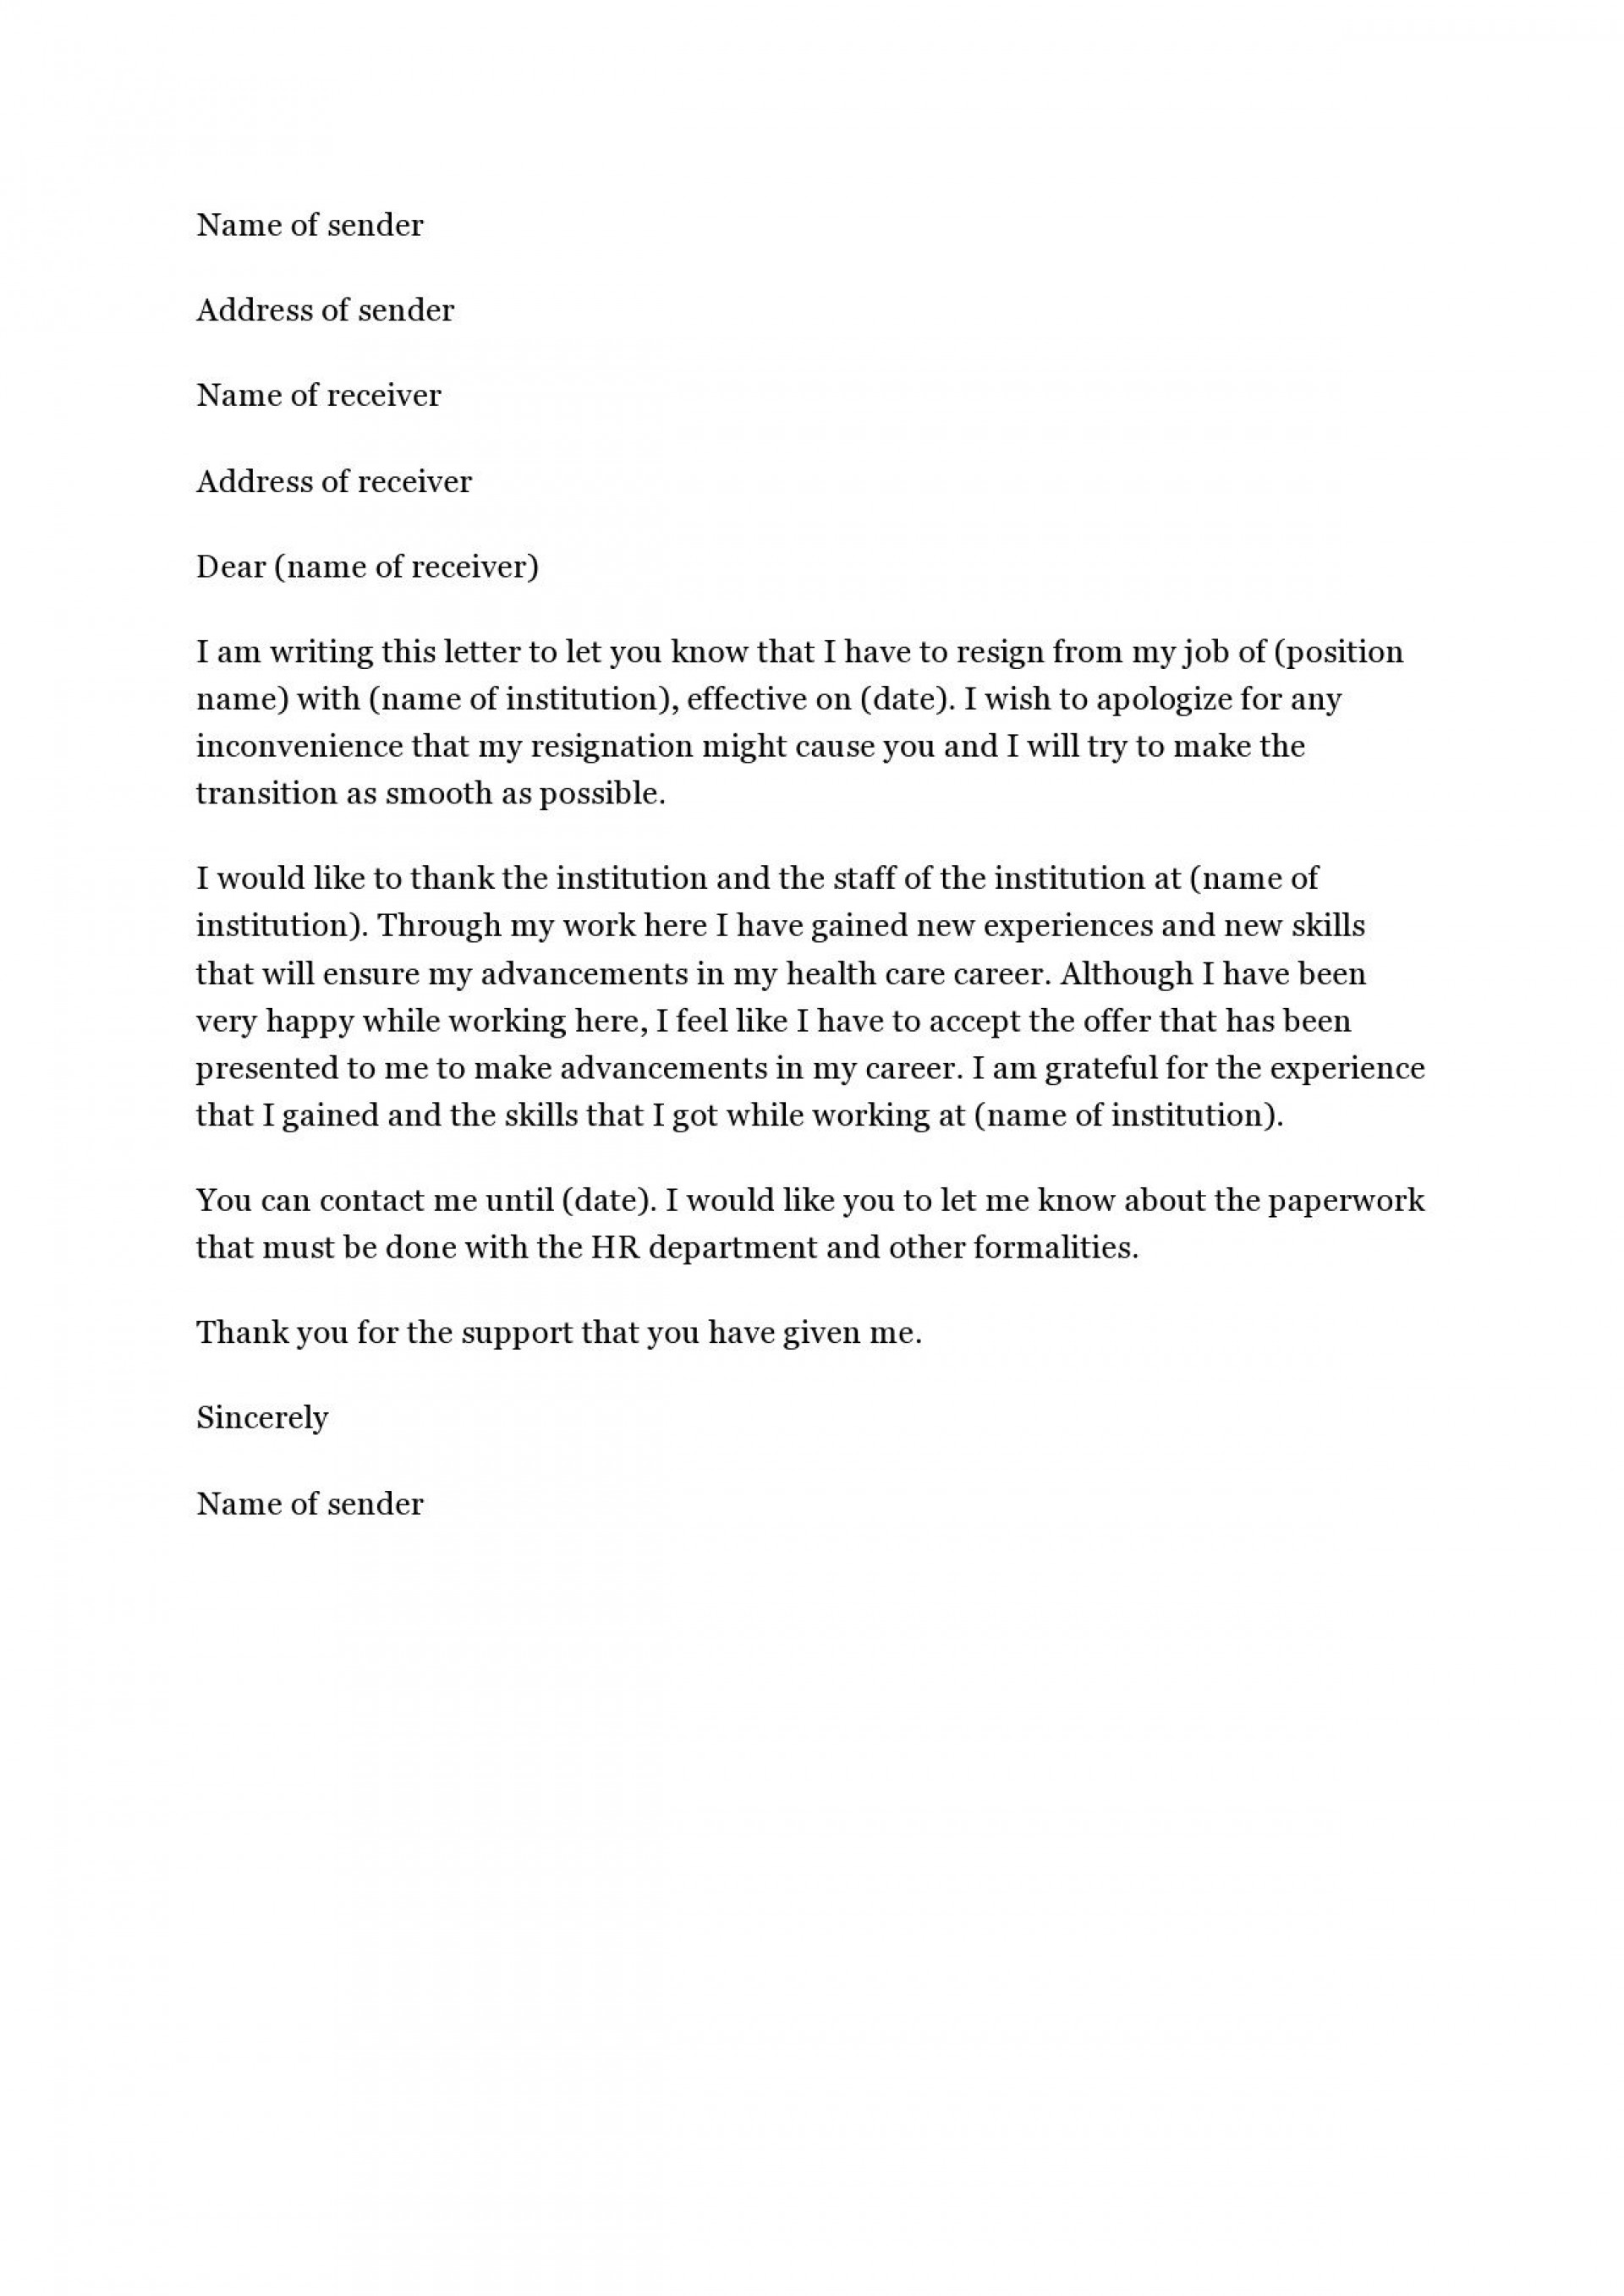 004 Amazing Sample Resignation Letter Template Email High Definition 1920